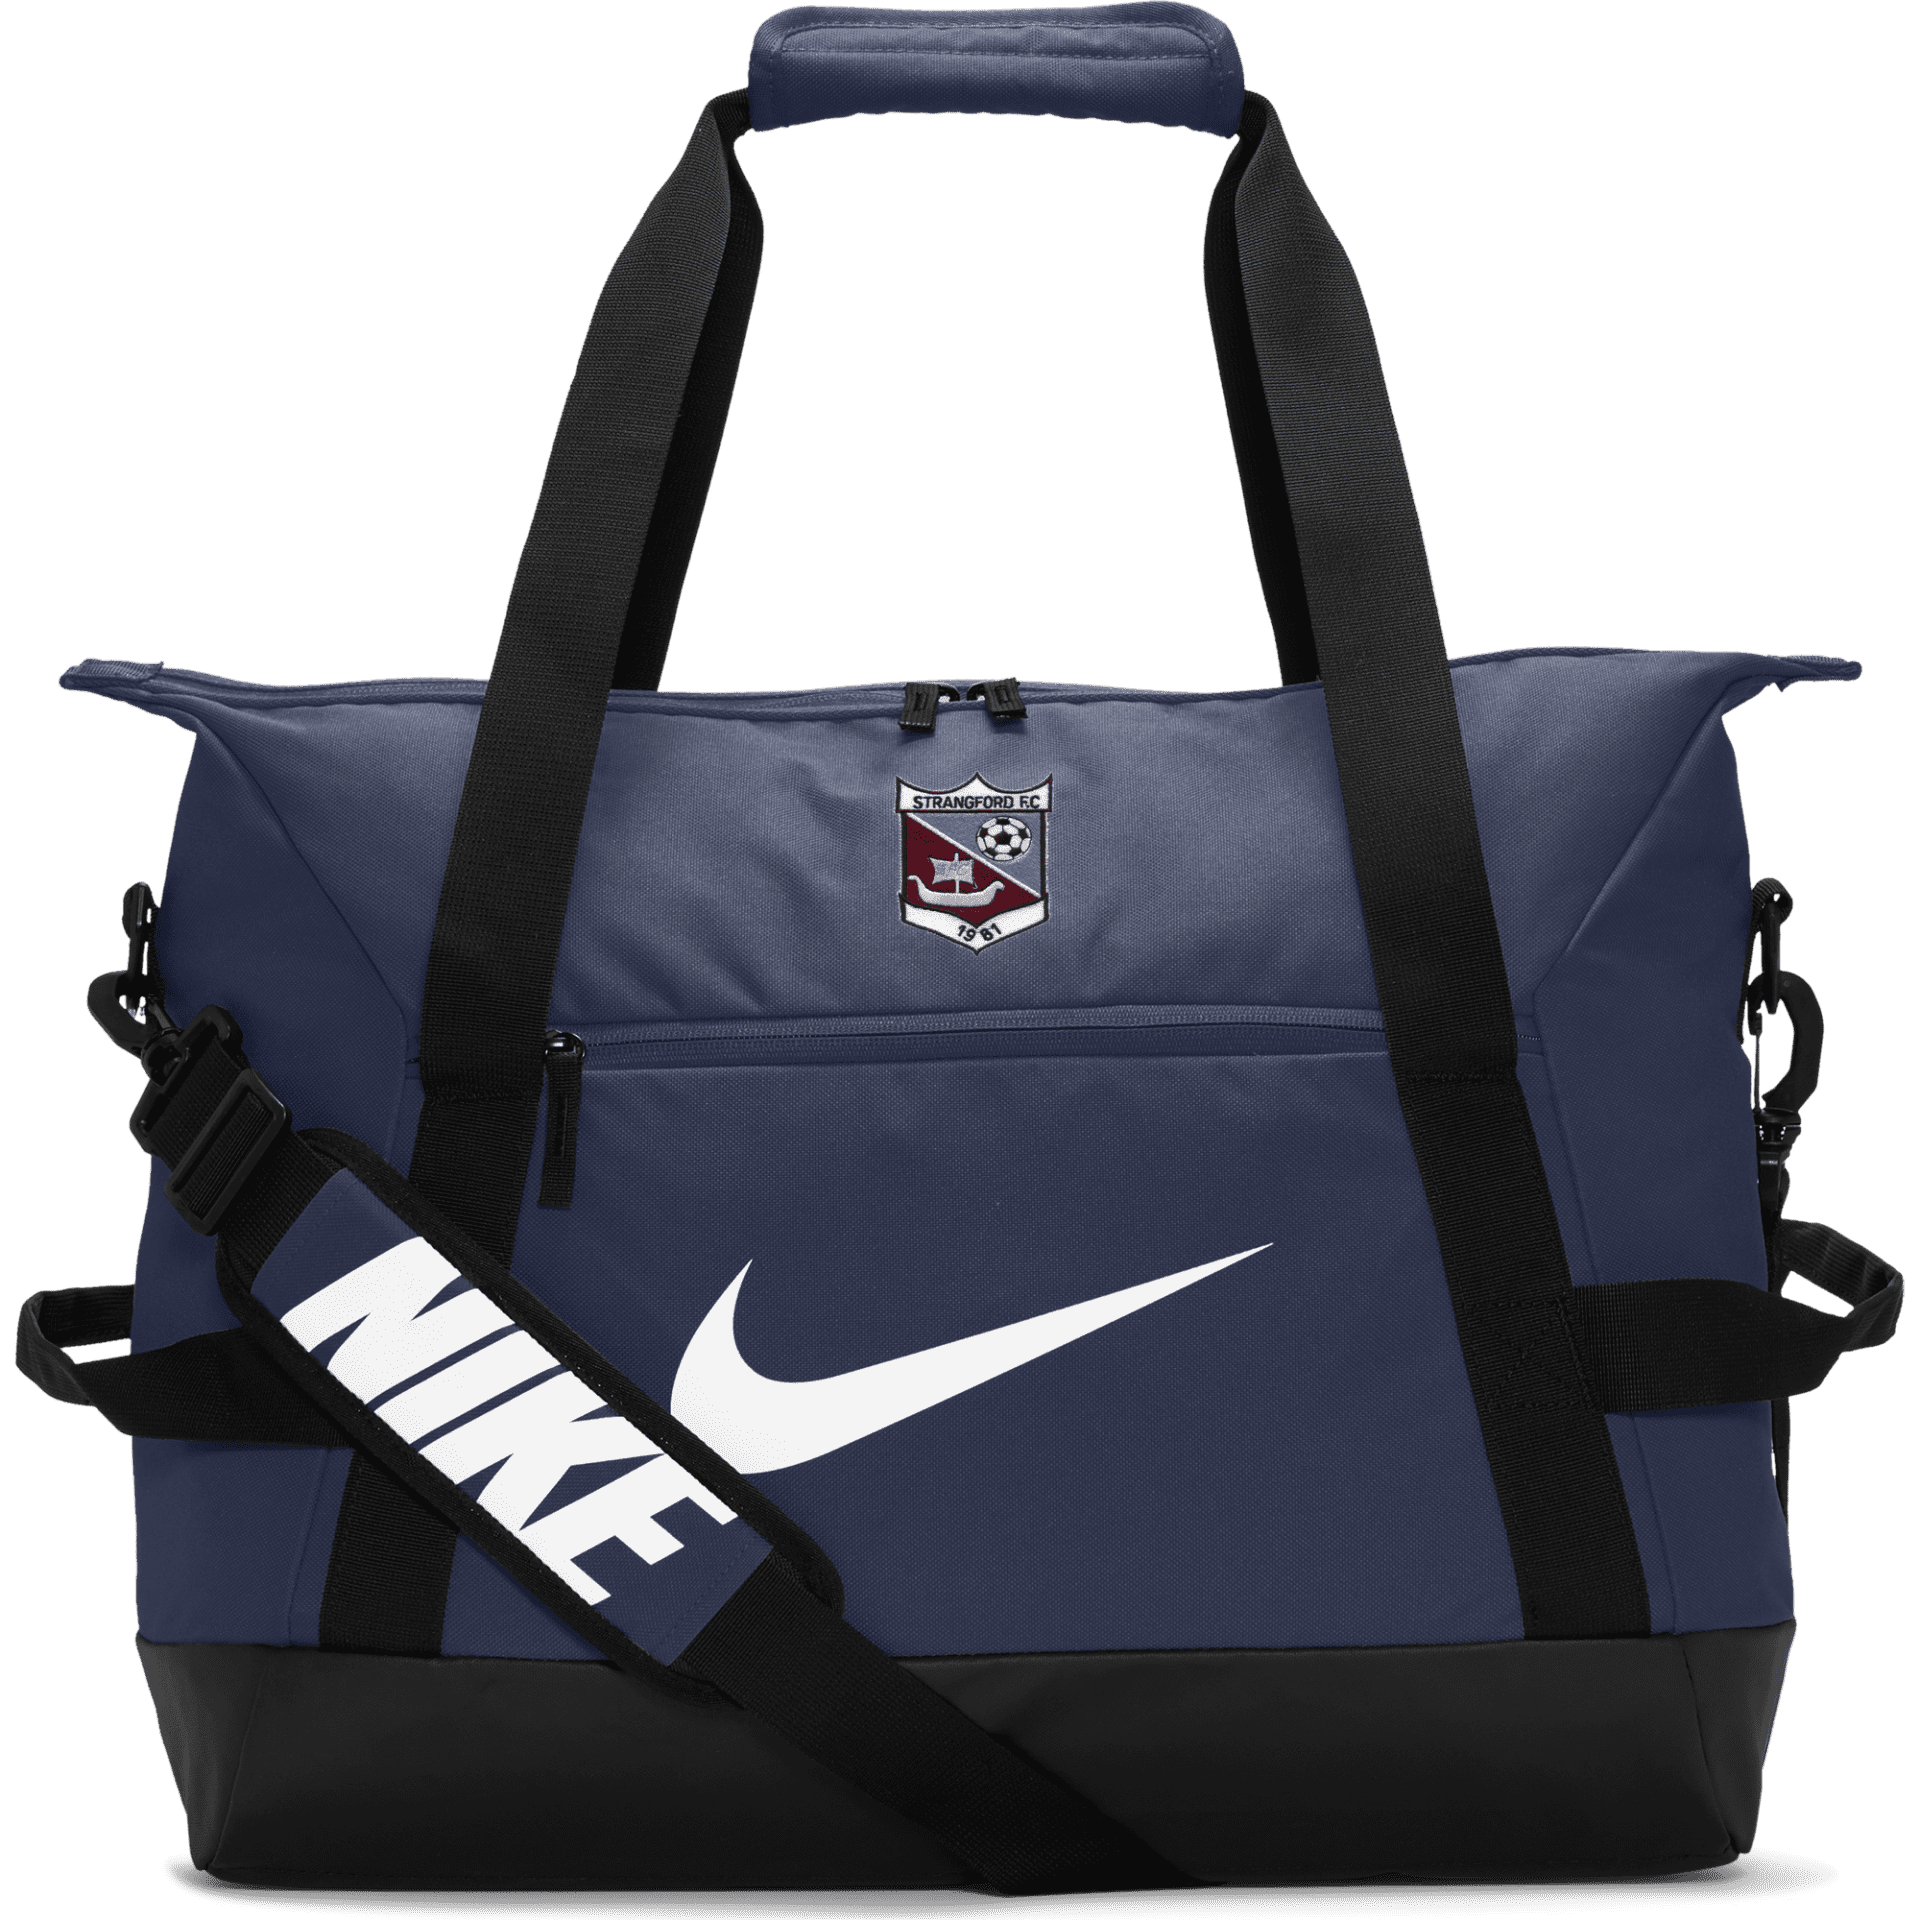 strangford duffel bag 31787 1 p